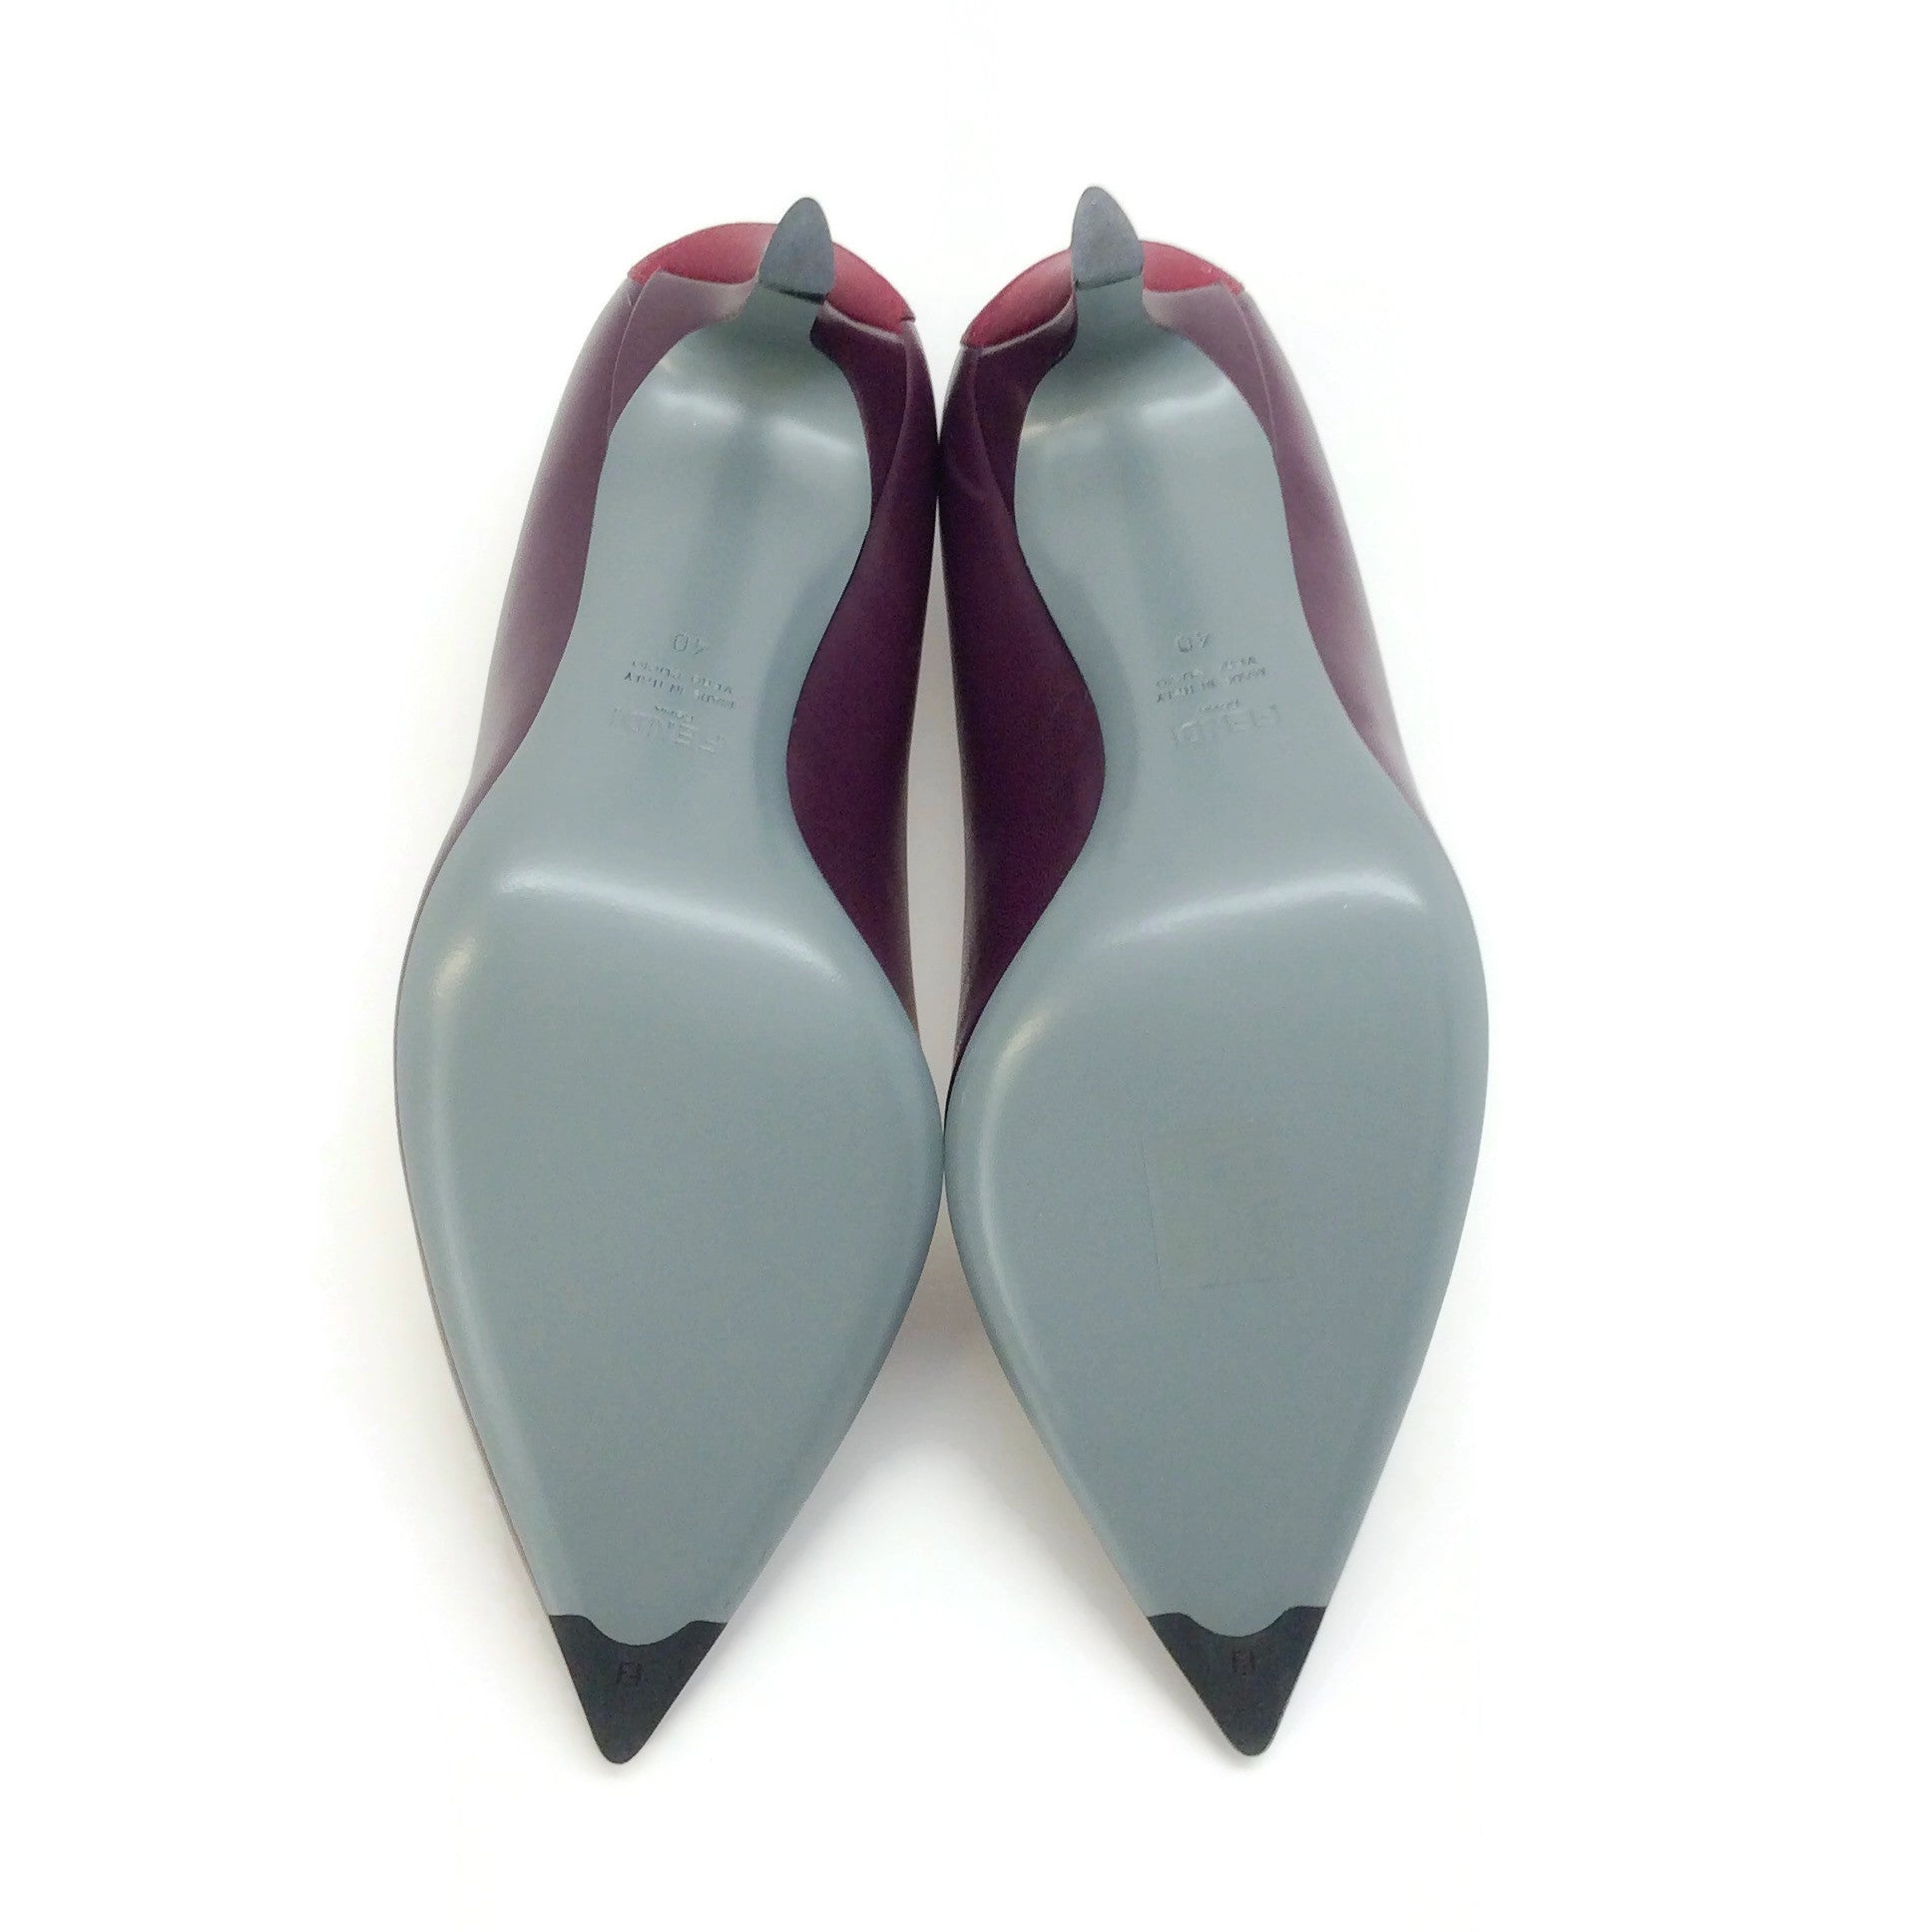 Fendi Black Cherry Grosgrain Ribbon Pumps